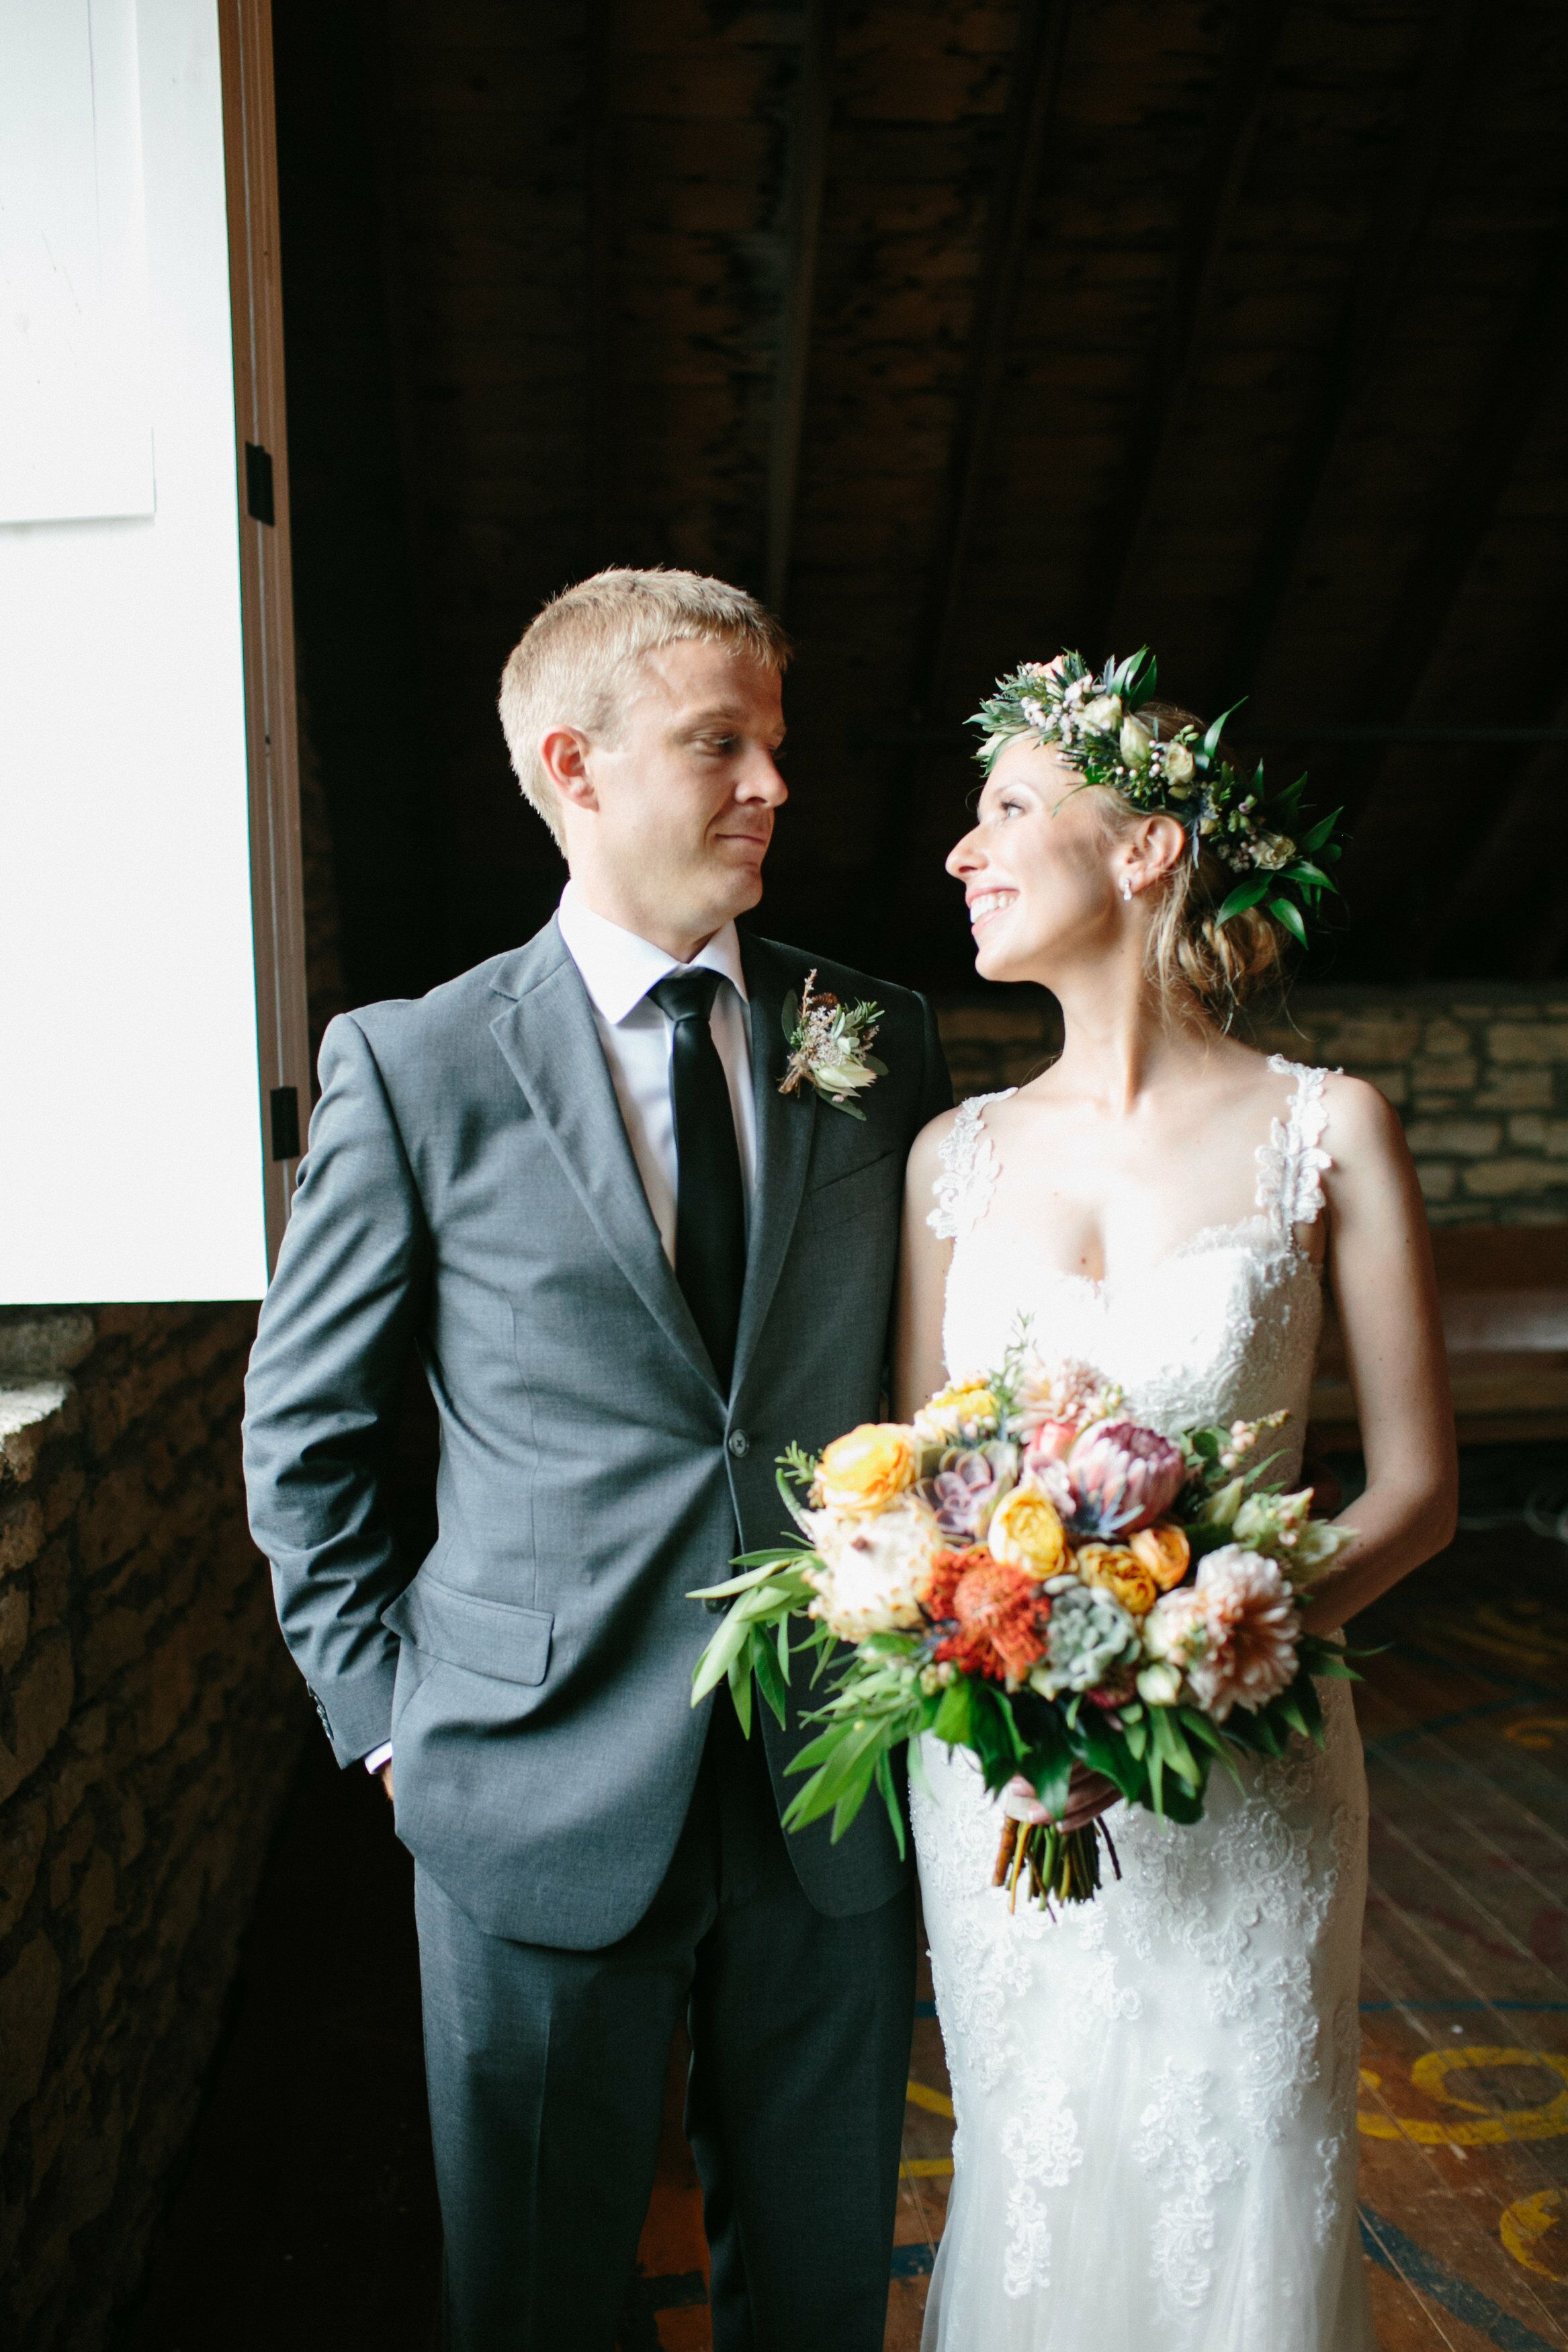 A Rustic Botanical Garden Wedding at Mayowood Stone Barn ...